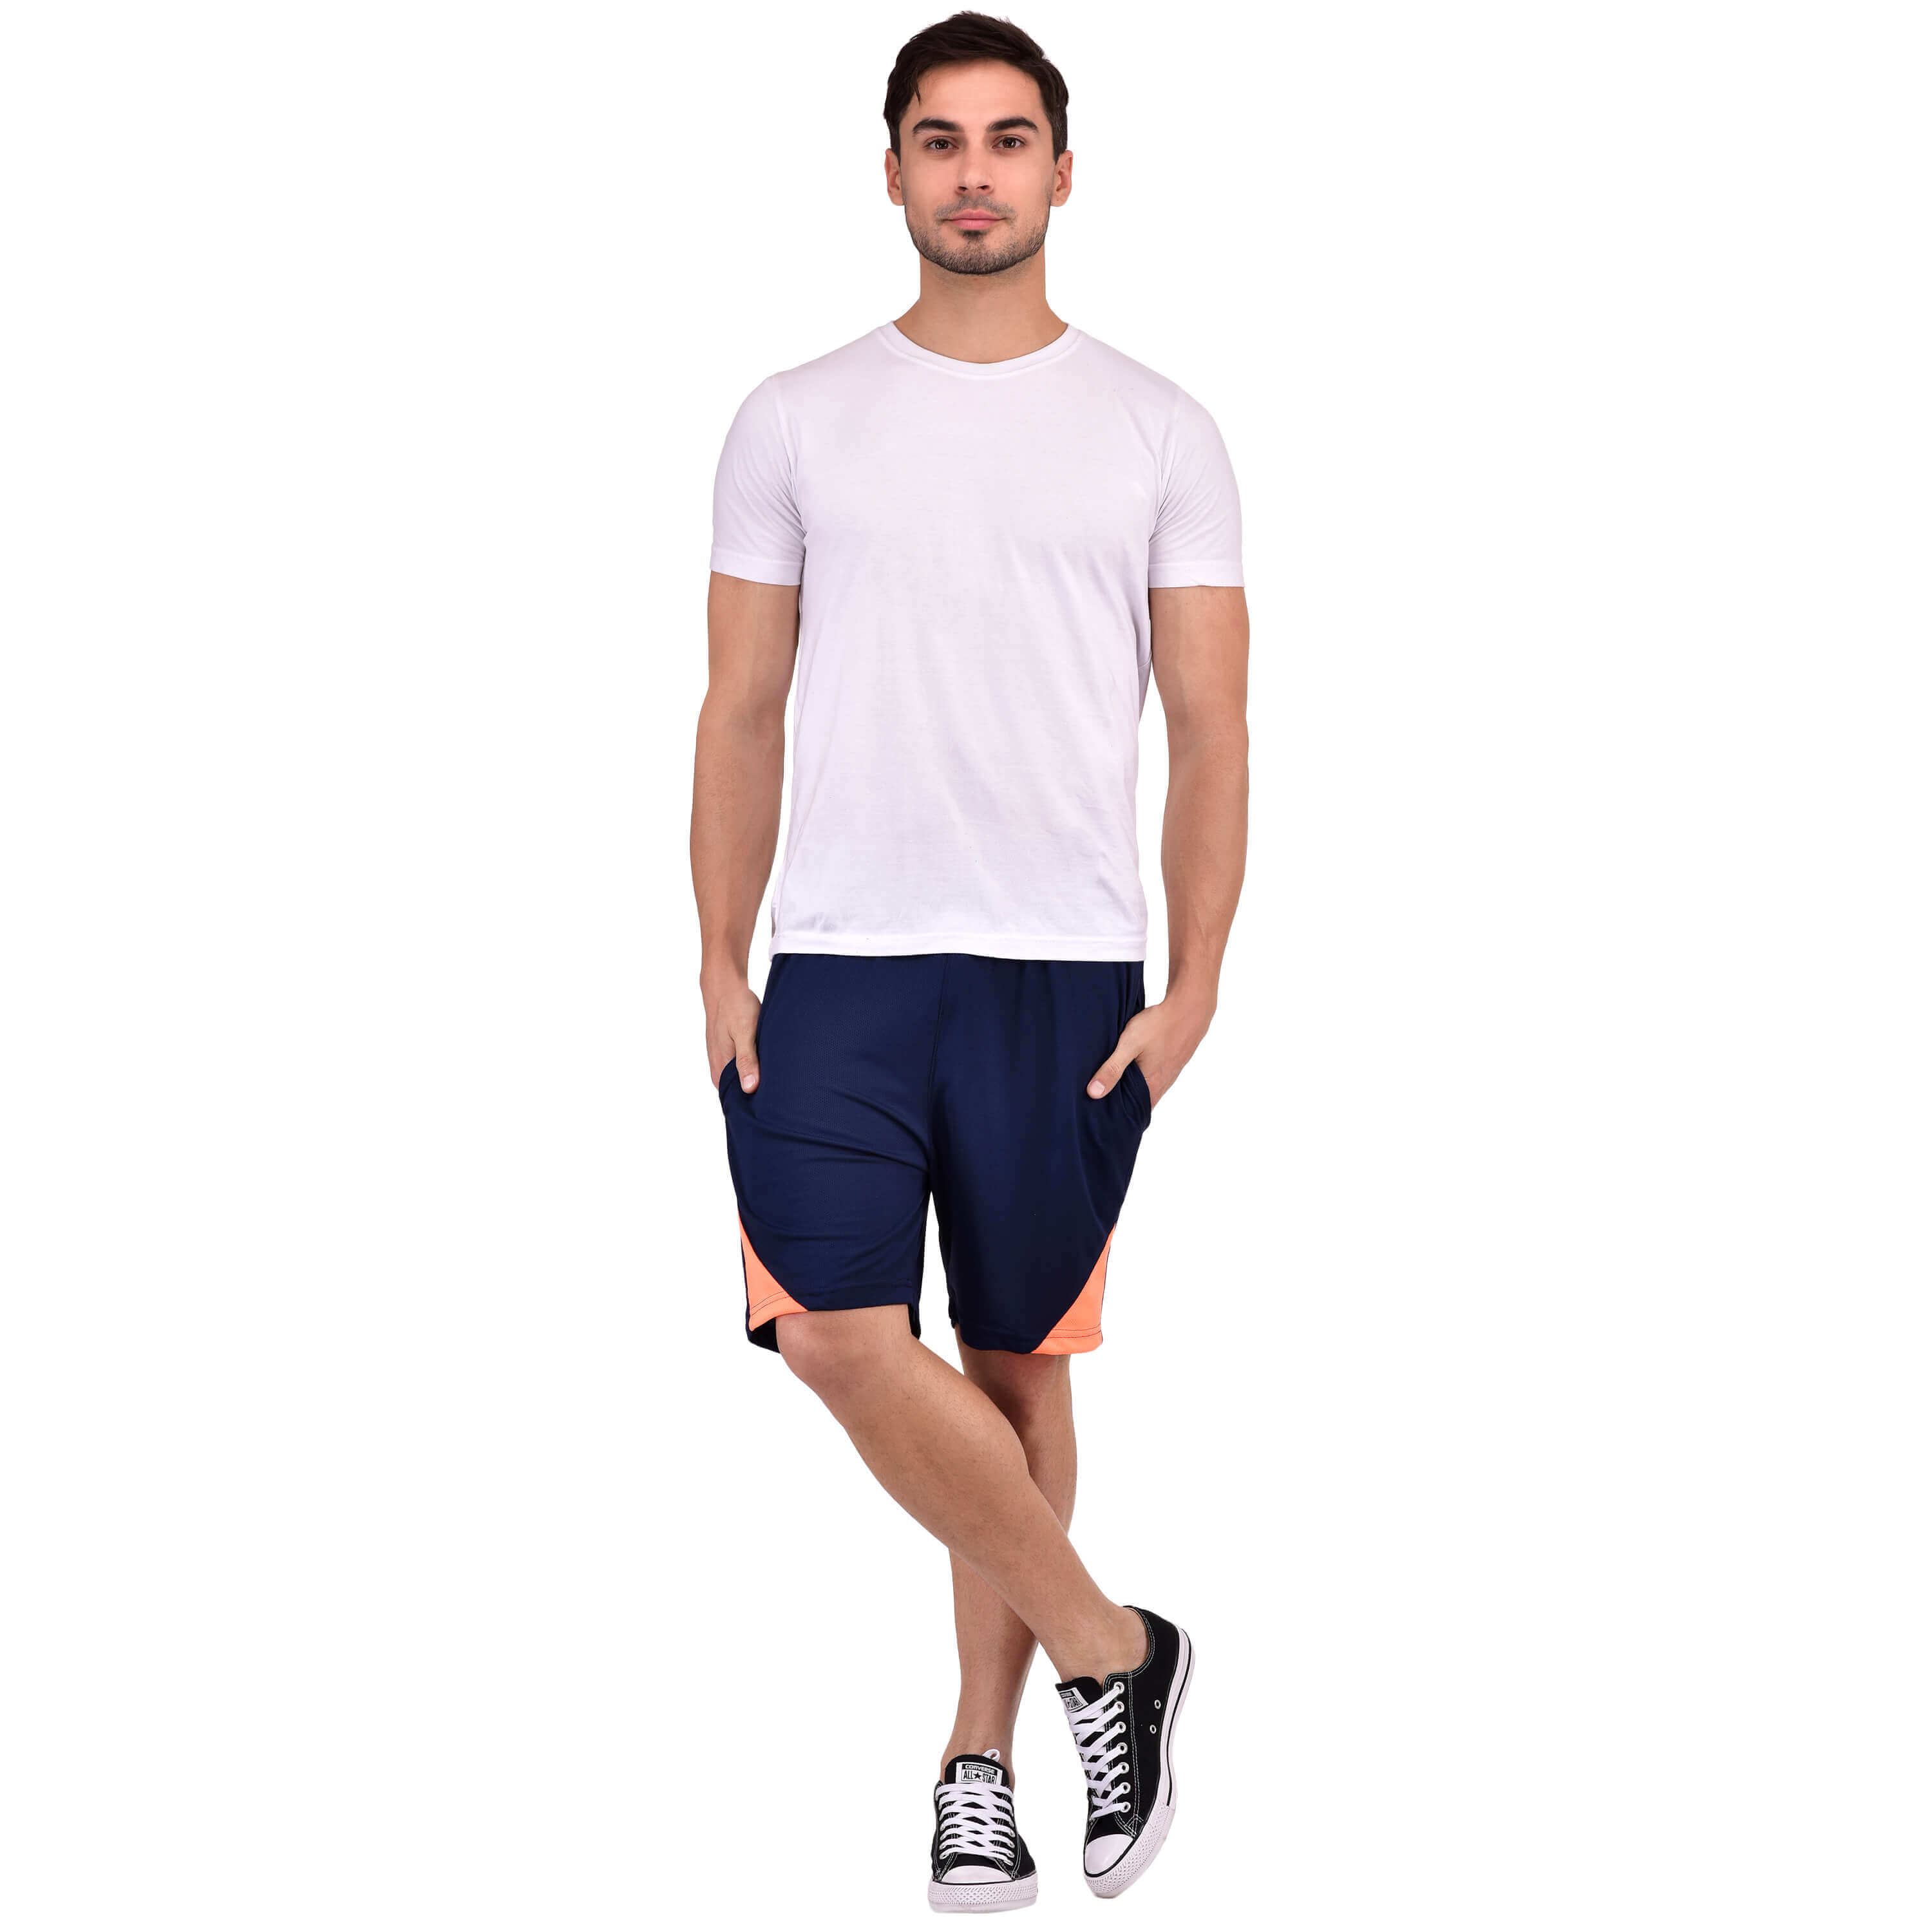 Cotton T Shirts Manufacturers in Saharanpur